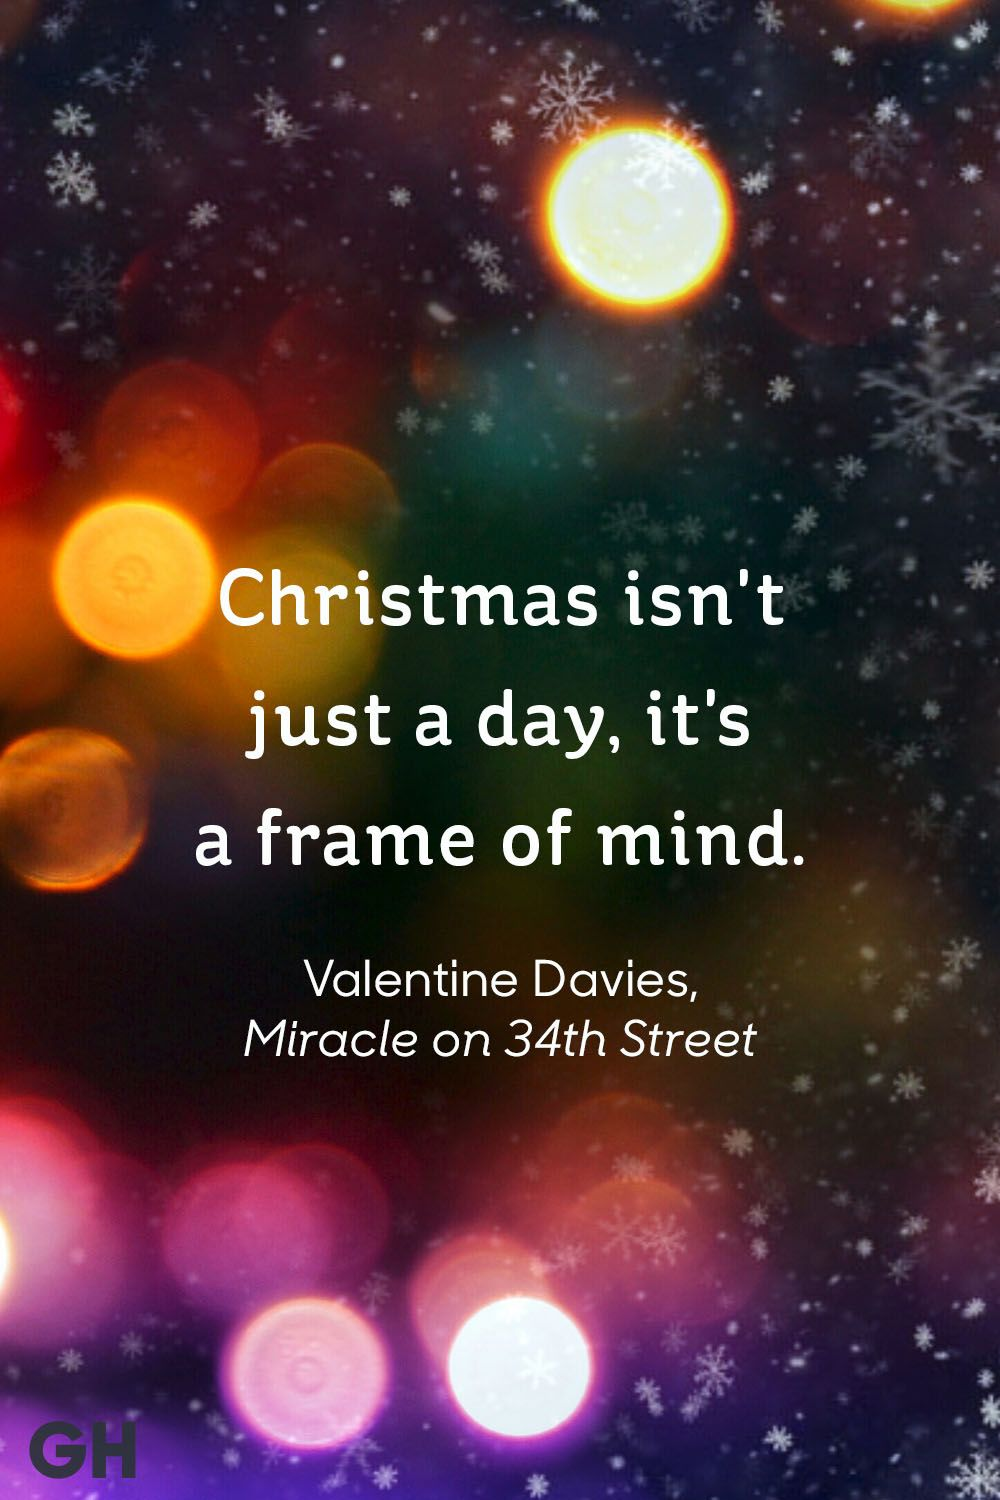 """valentine davies, """"miracle on 34th street"""" -best christmas quotes"""